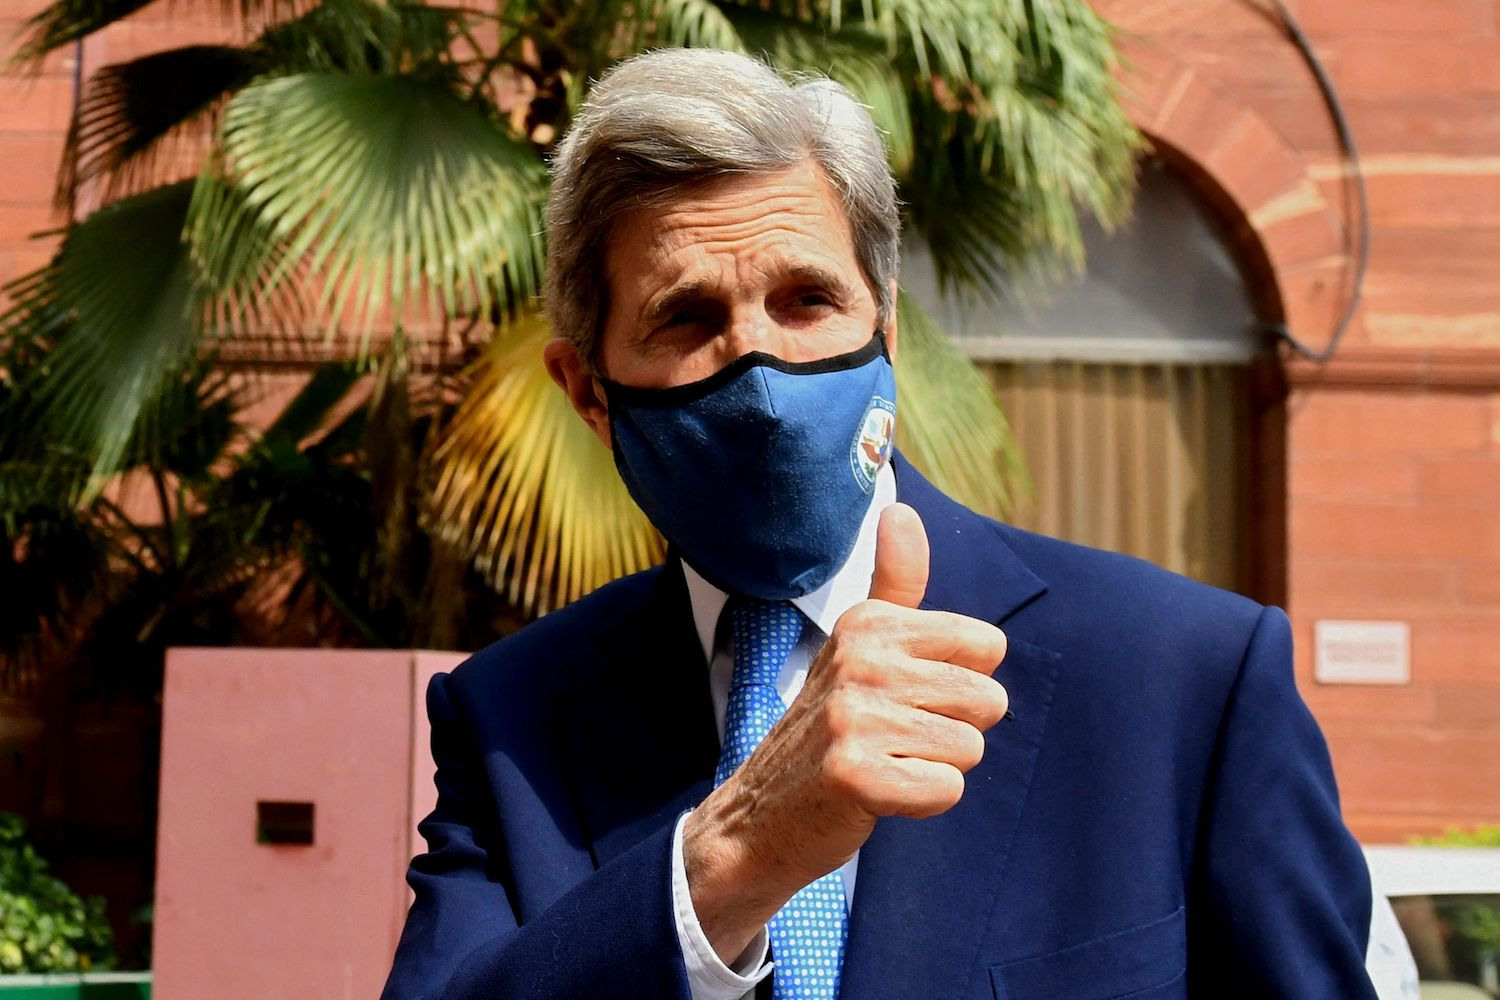 U.S. climate envoy John Kerry gesture as he arrives at the Ministry of Finance for a meeting with Indian Finance Minister Nirmala Sitharaman, in New Delhi on April 6.